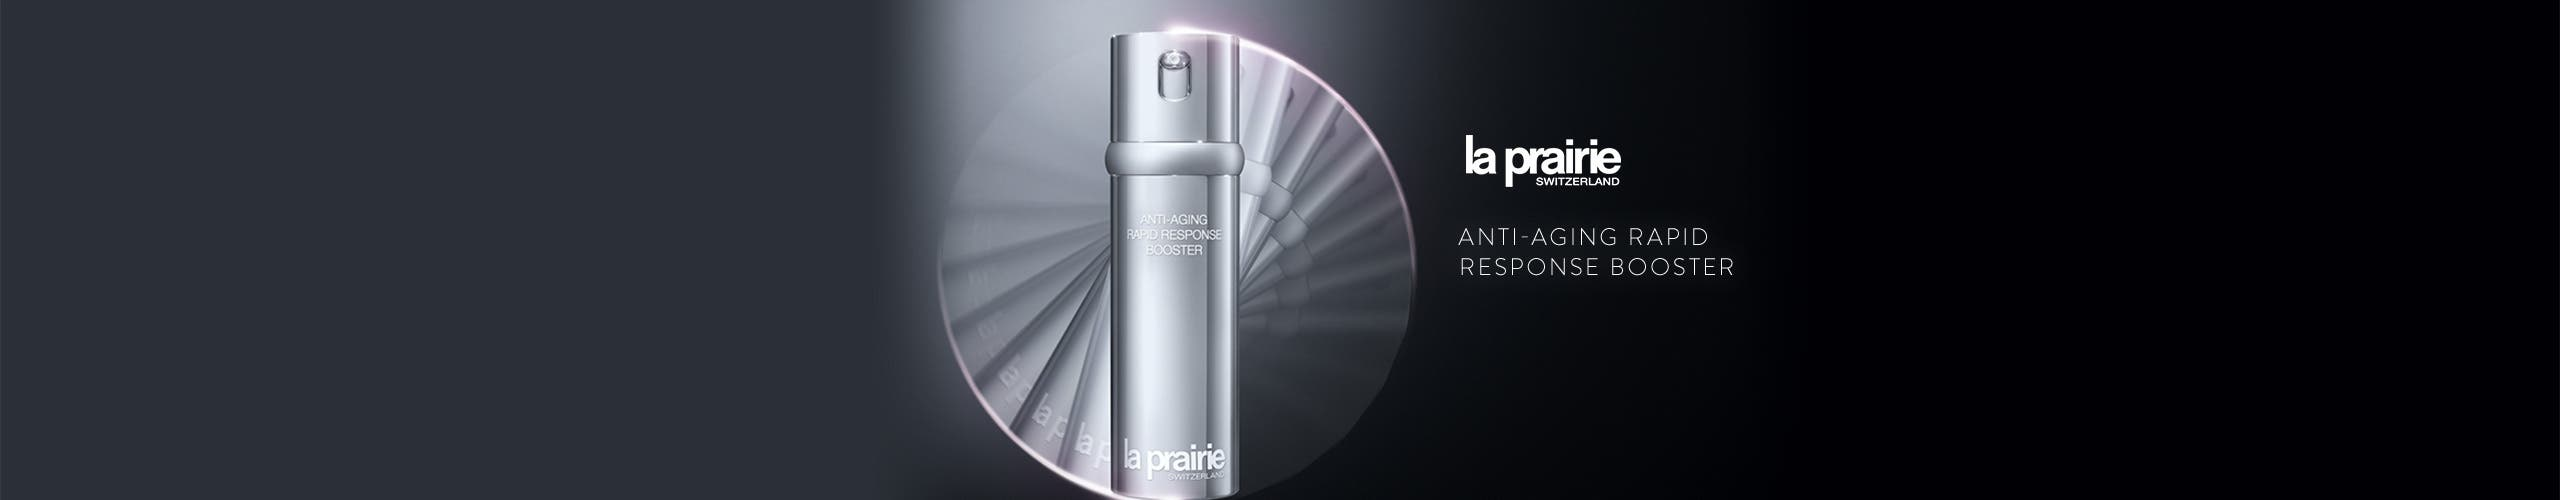 Anti-Aging Rapid Response Booster.